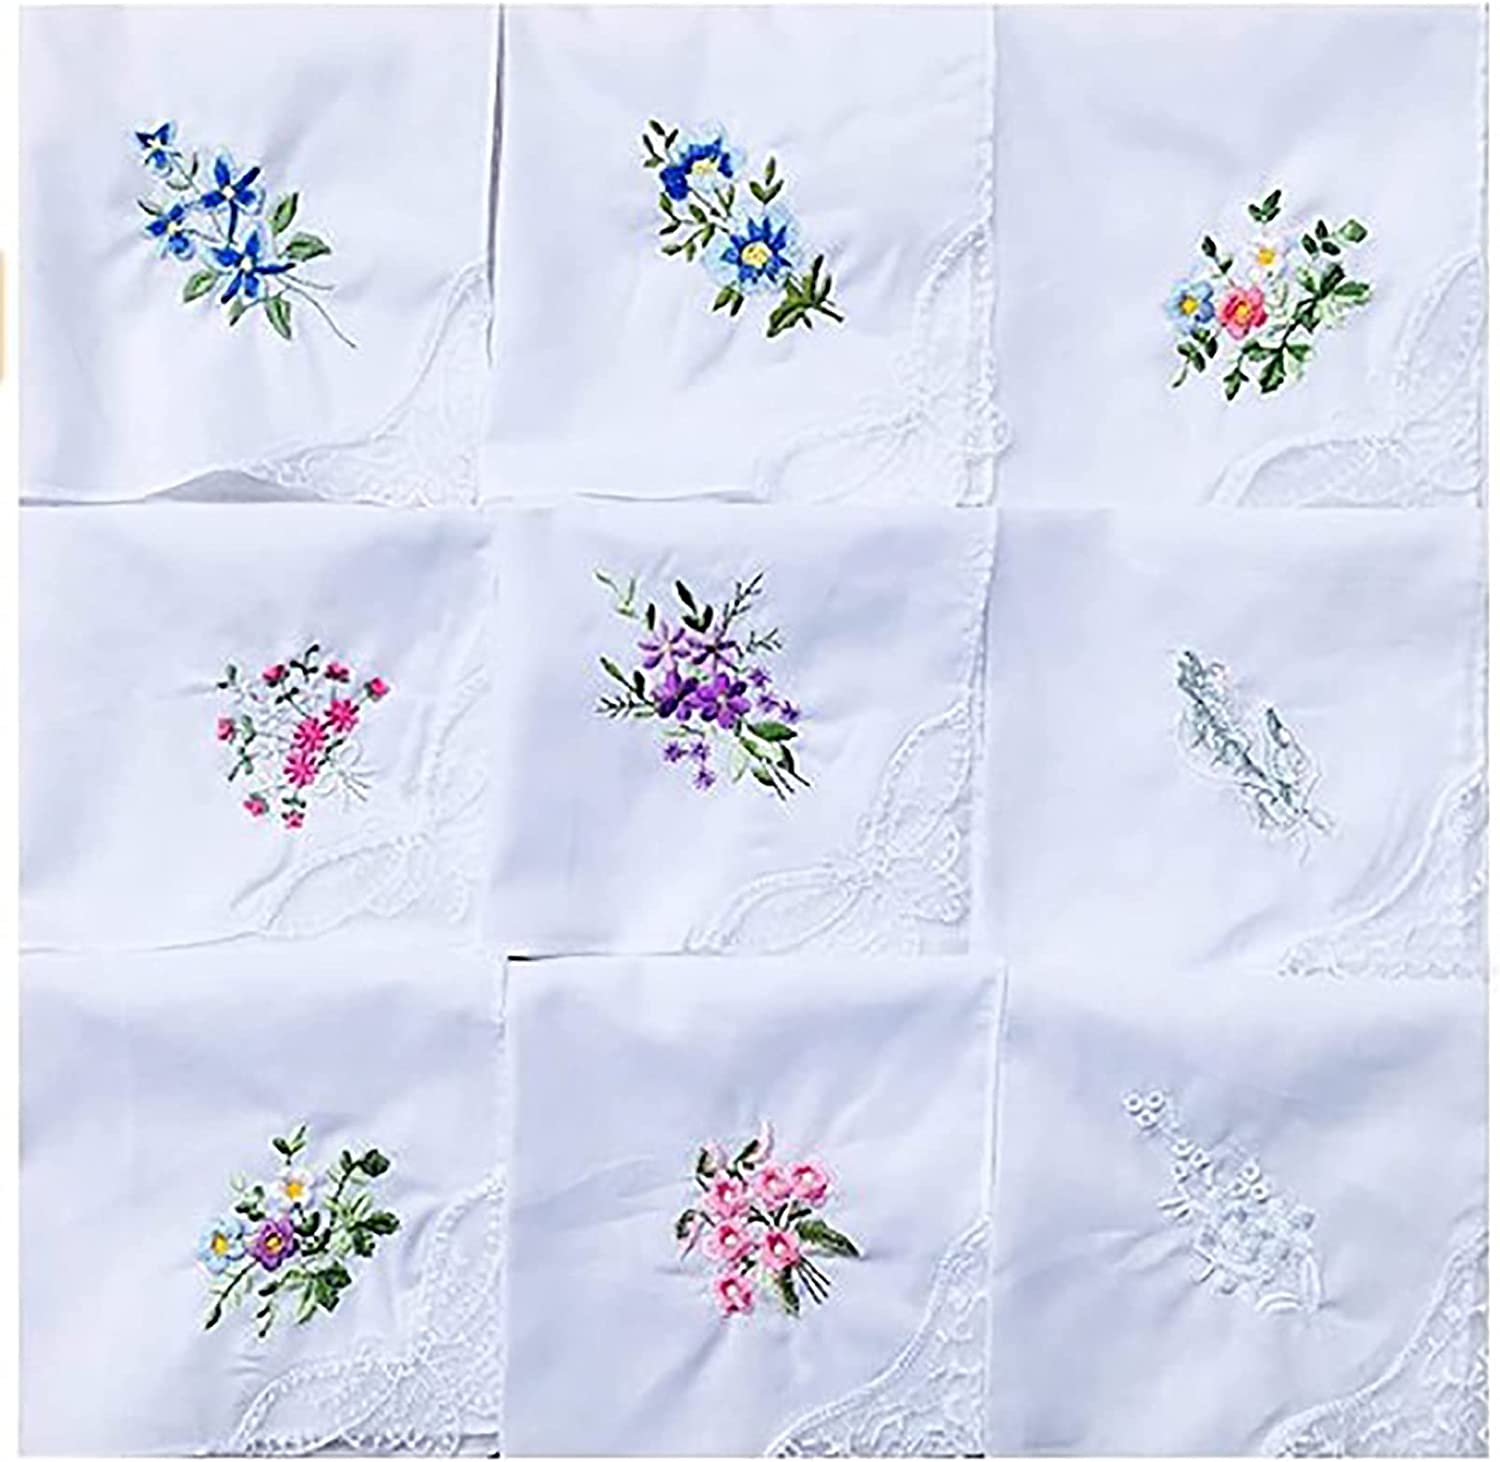 Emivery 9Pcs Ladies Flower Embroidered Handkerchief Cotton Lace Square Towel for Women Girls Random Color